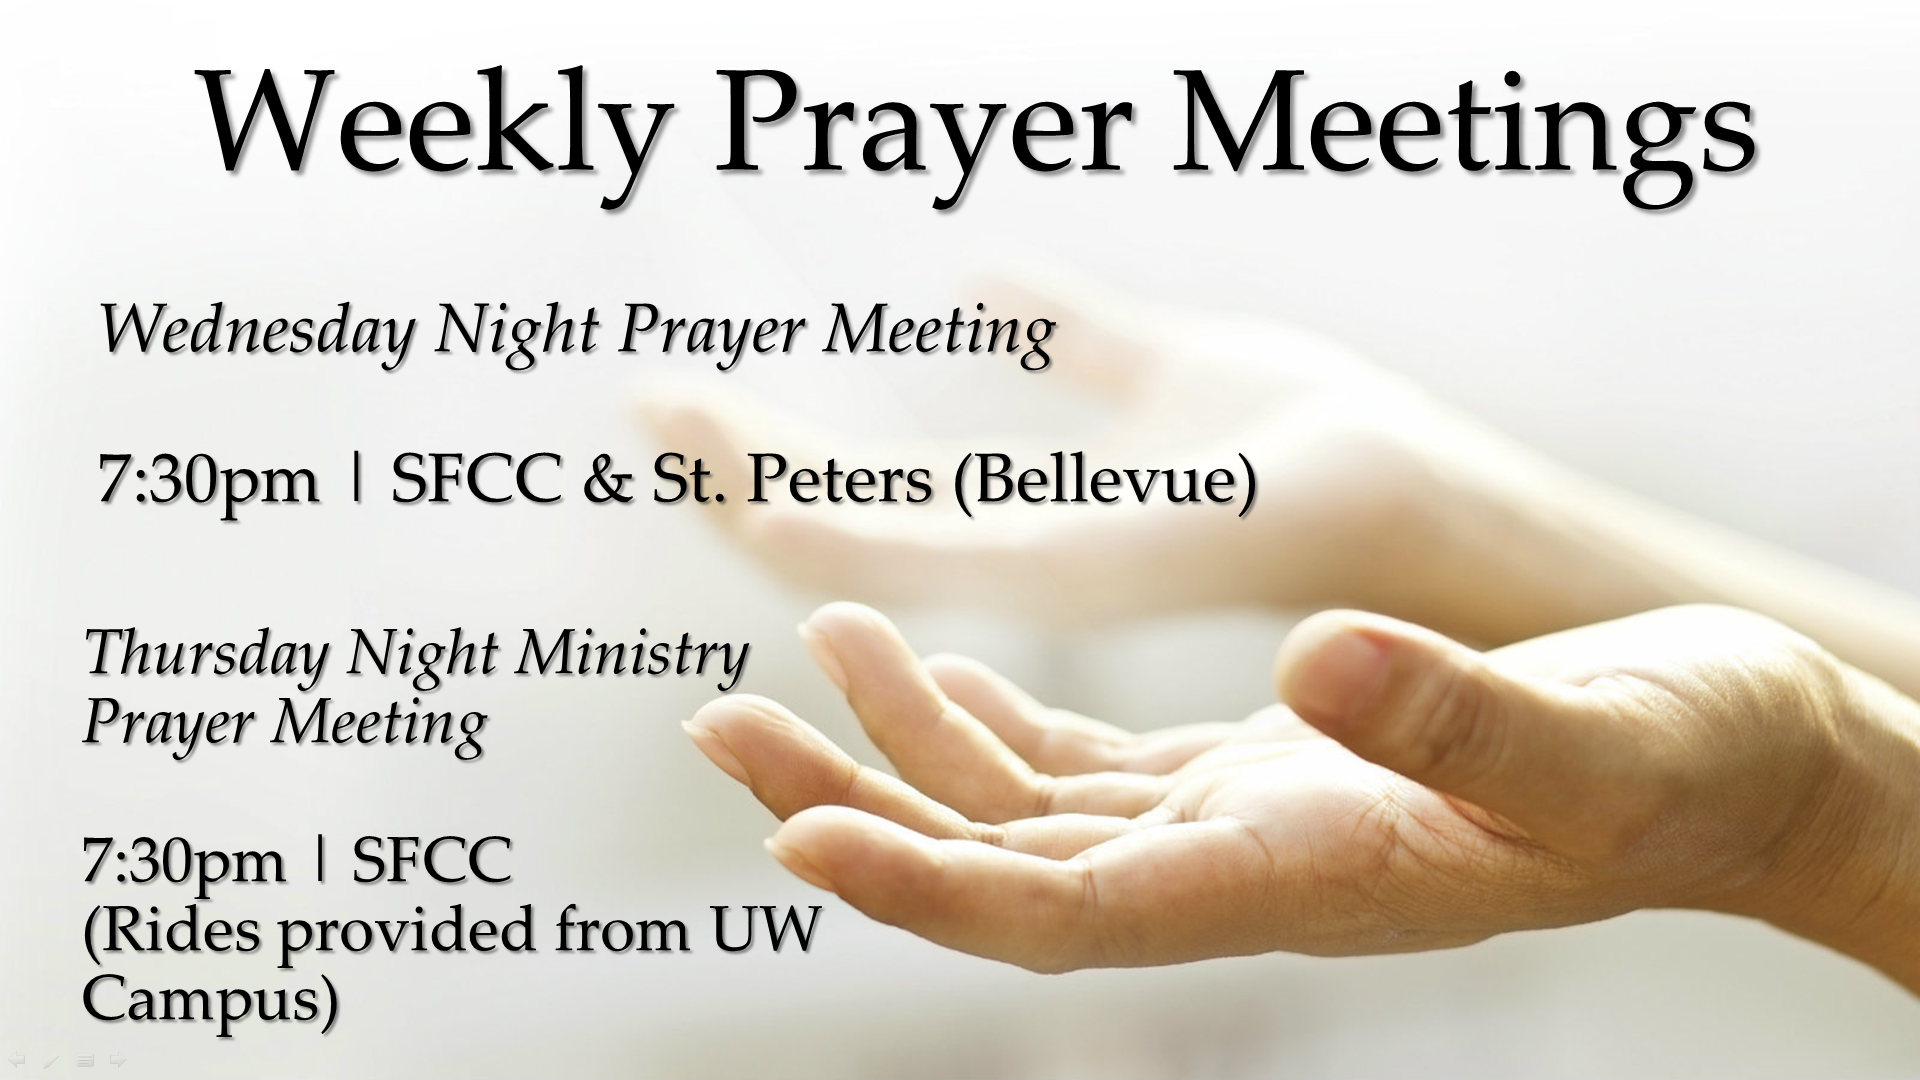 Weekly Prayer Meetings